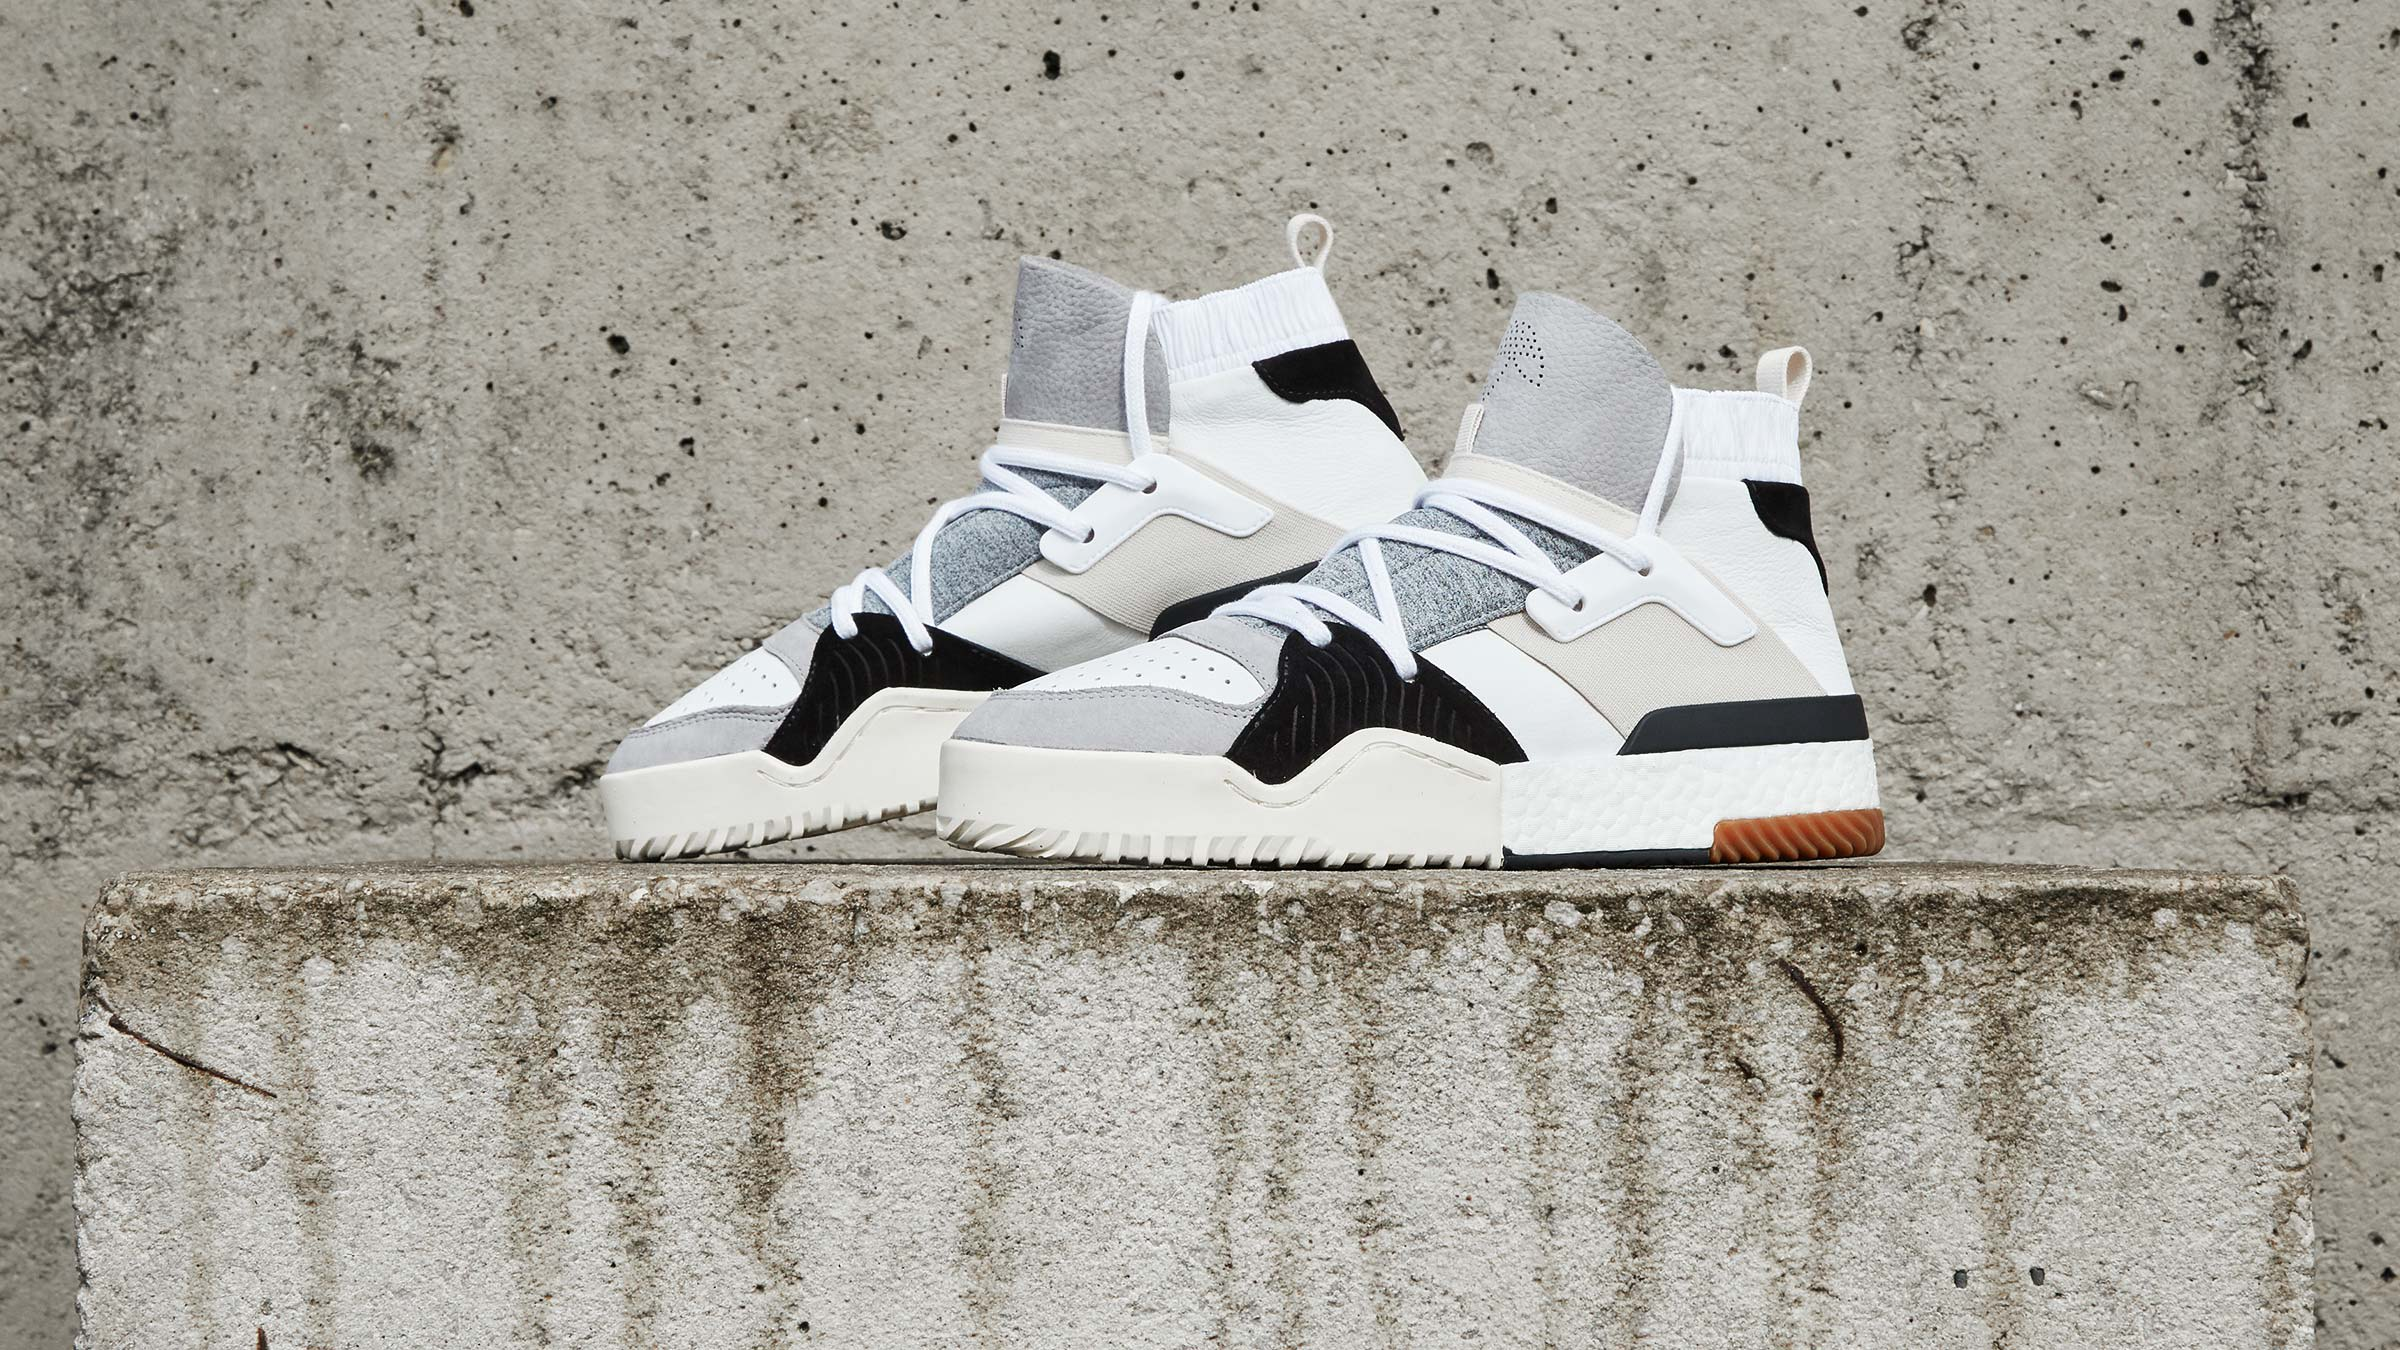 adidas X Alexander Wang BBALL Boost Leather White CM7824 ALL SIZES 3 11